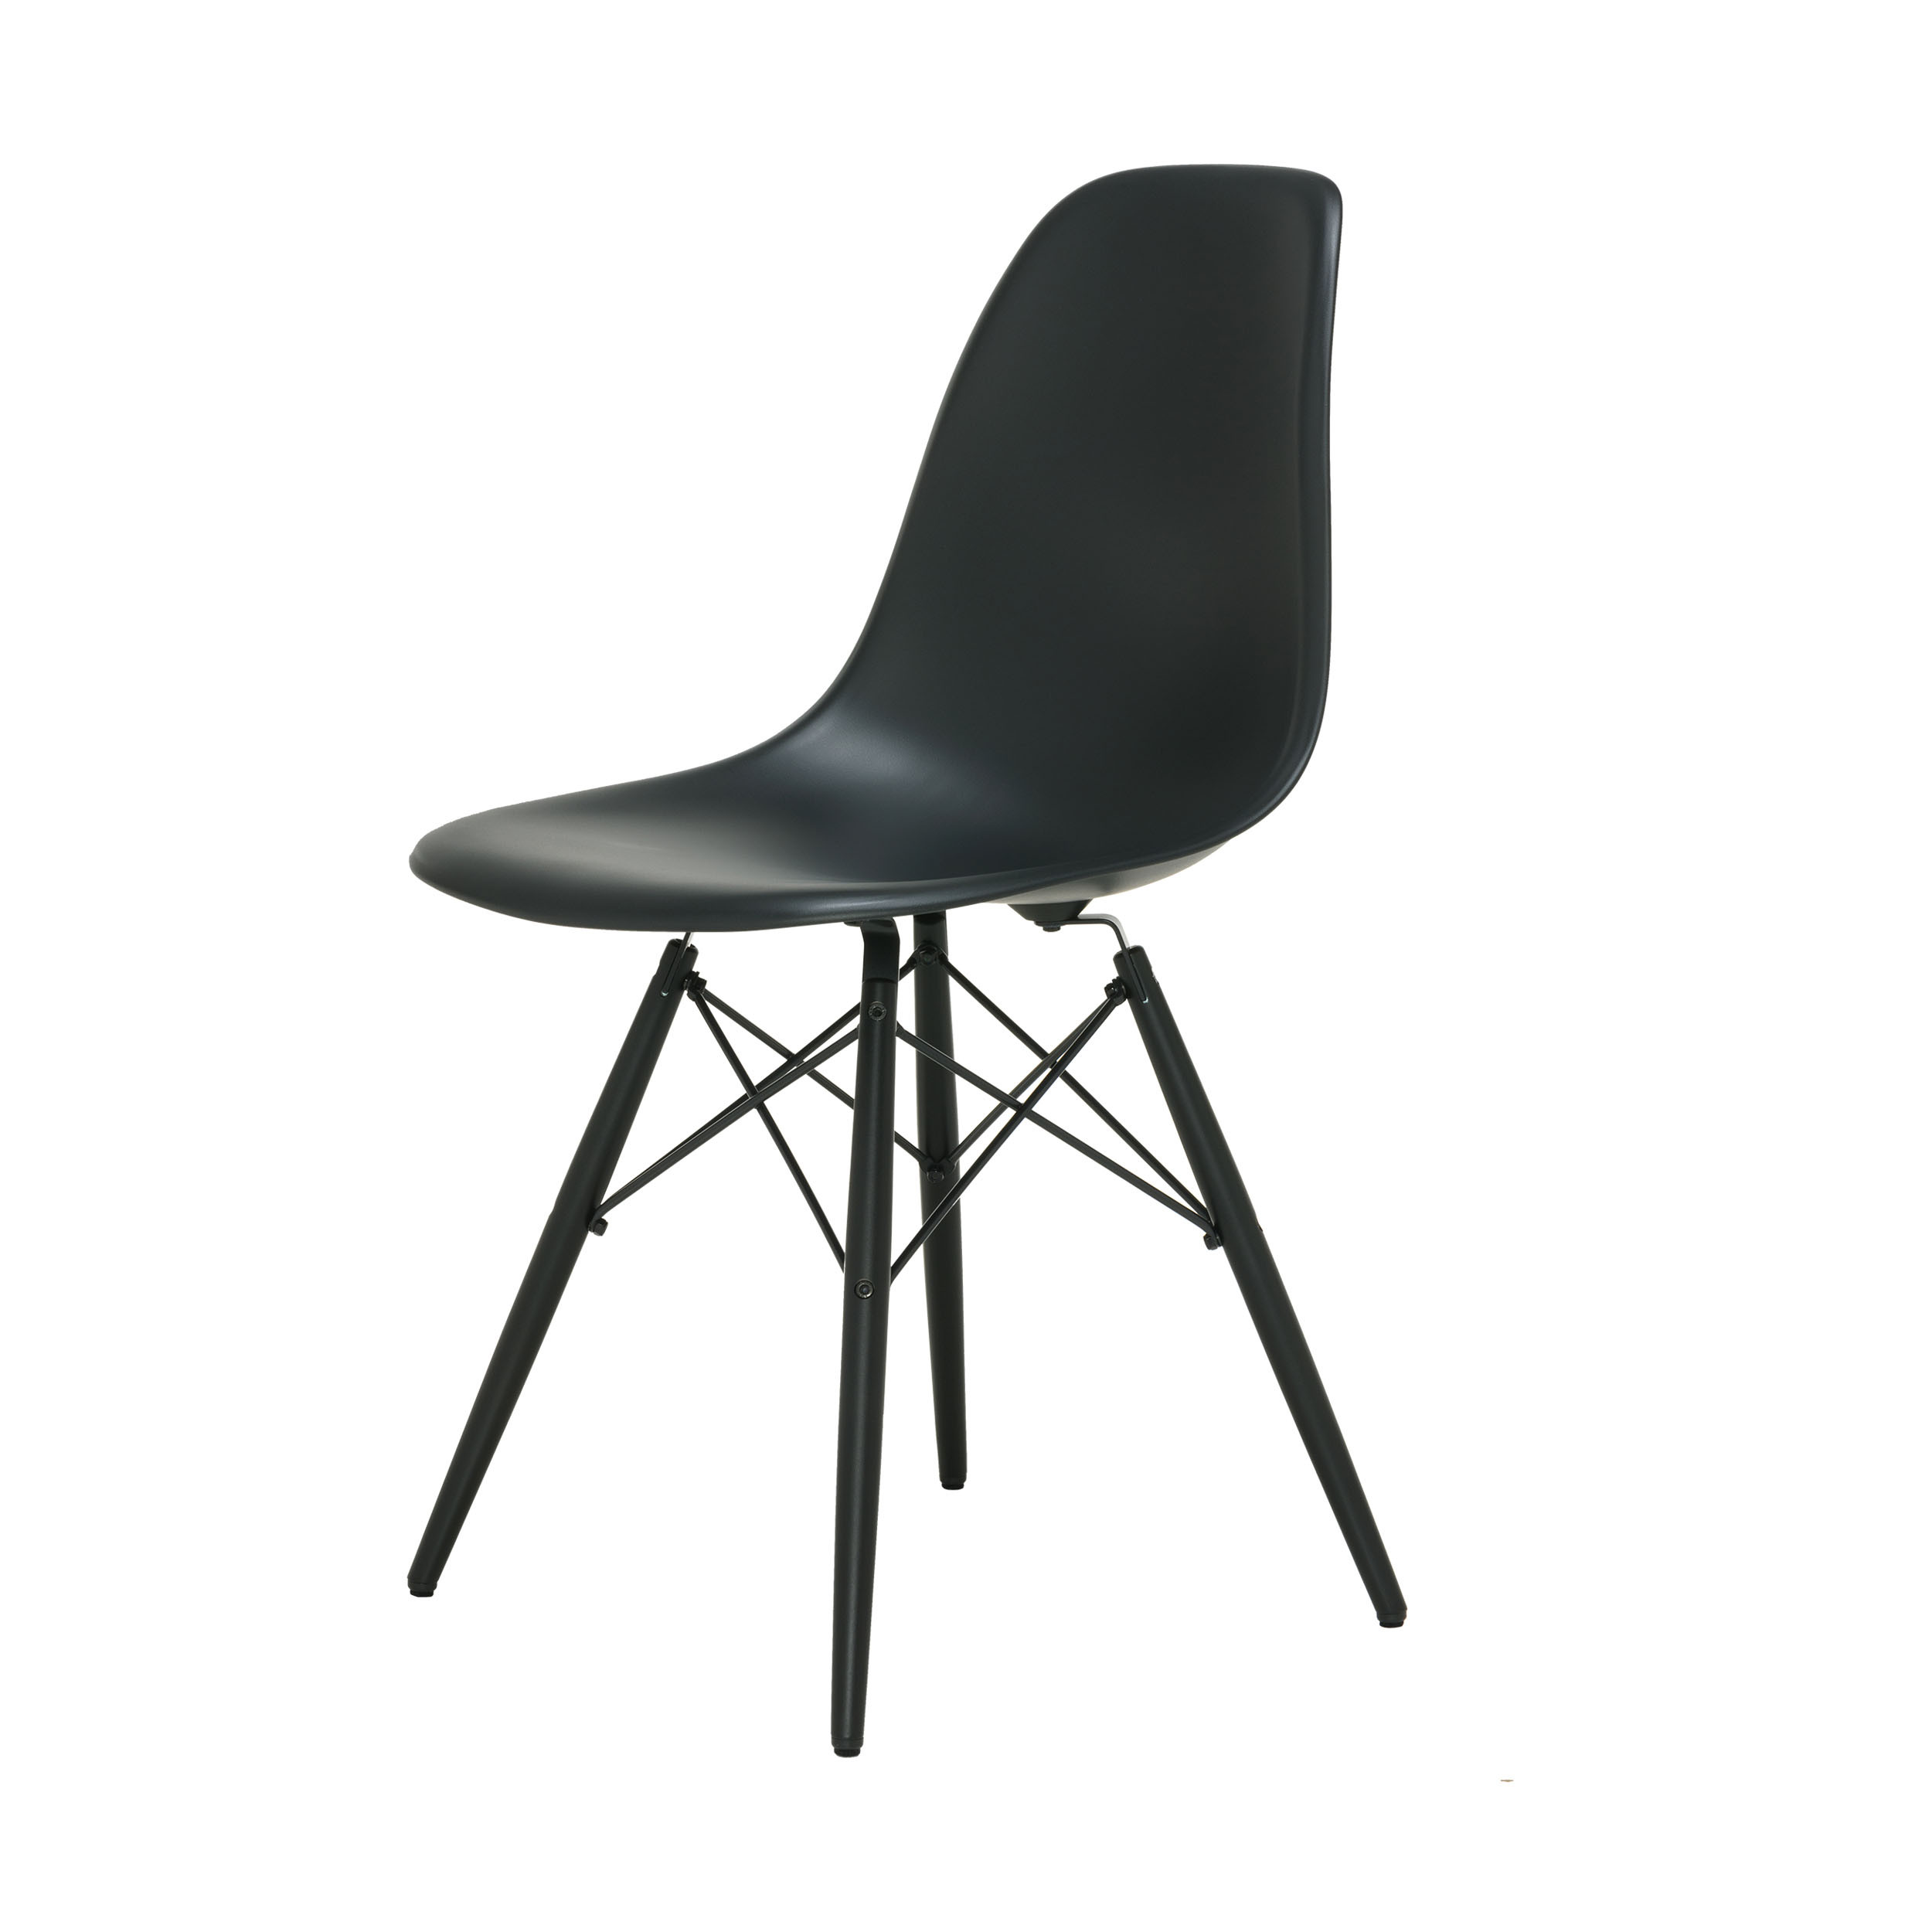 eames plastic side chair stuhl dsw mit kunststoffgleitern basic dark ahorn lackiert neue ma e. Black Bedroom Furniture Sets. Home Design Ideas